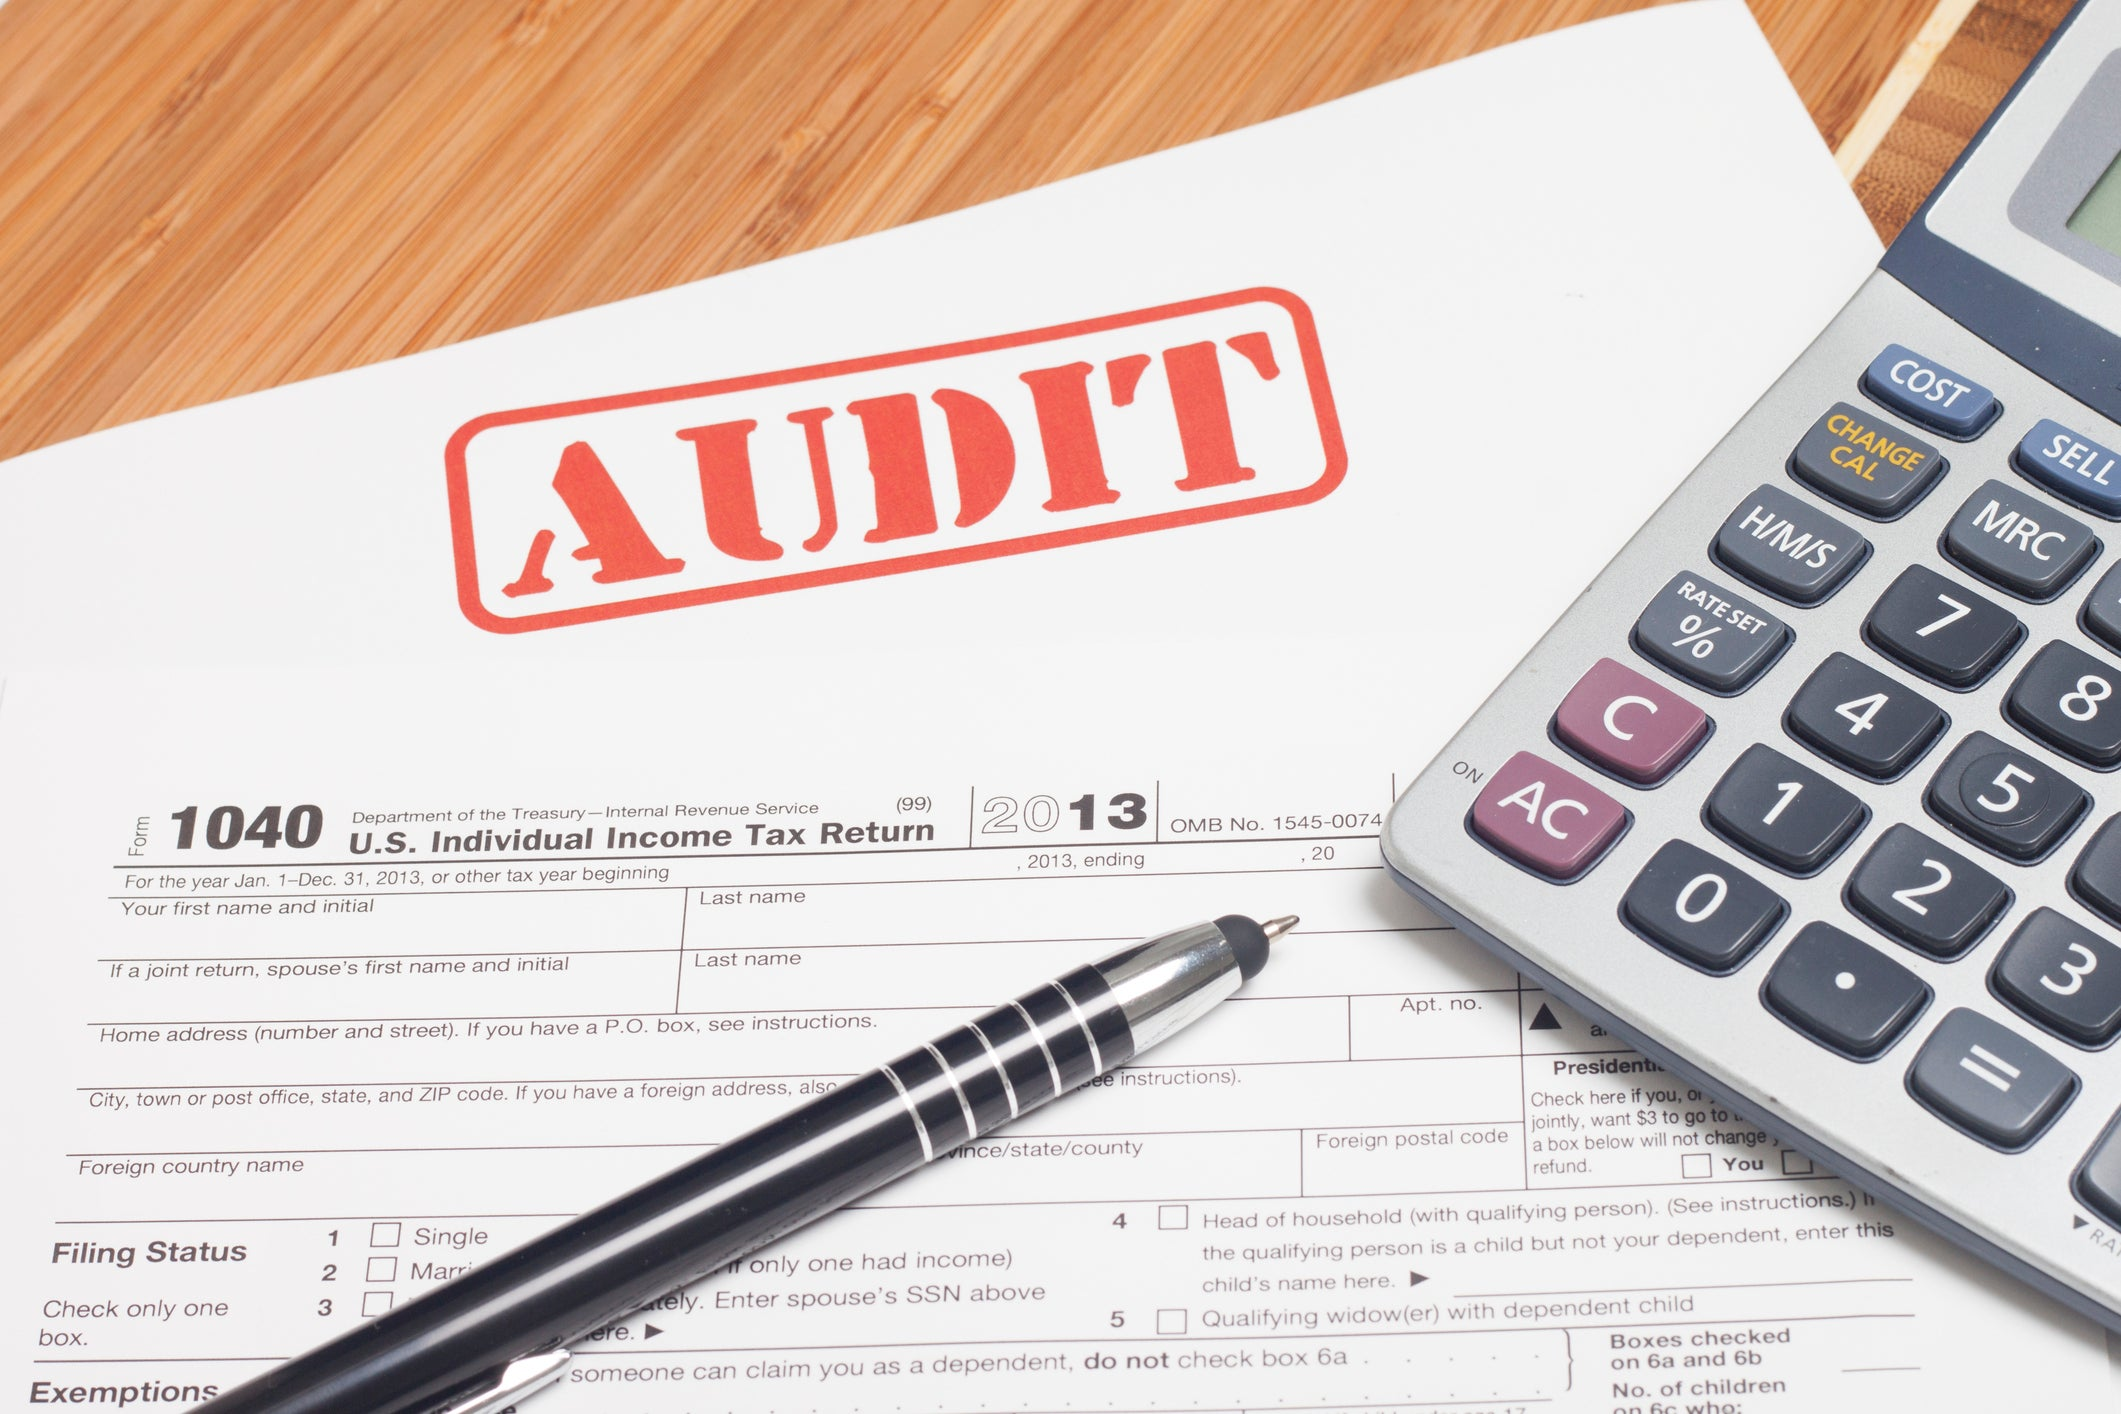 10 Red Flags That Could Trigger A Tax Audit In 2018 The Motley Fool